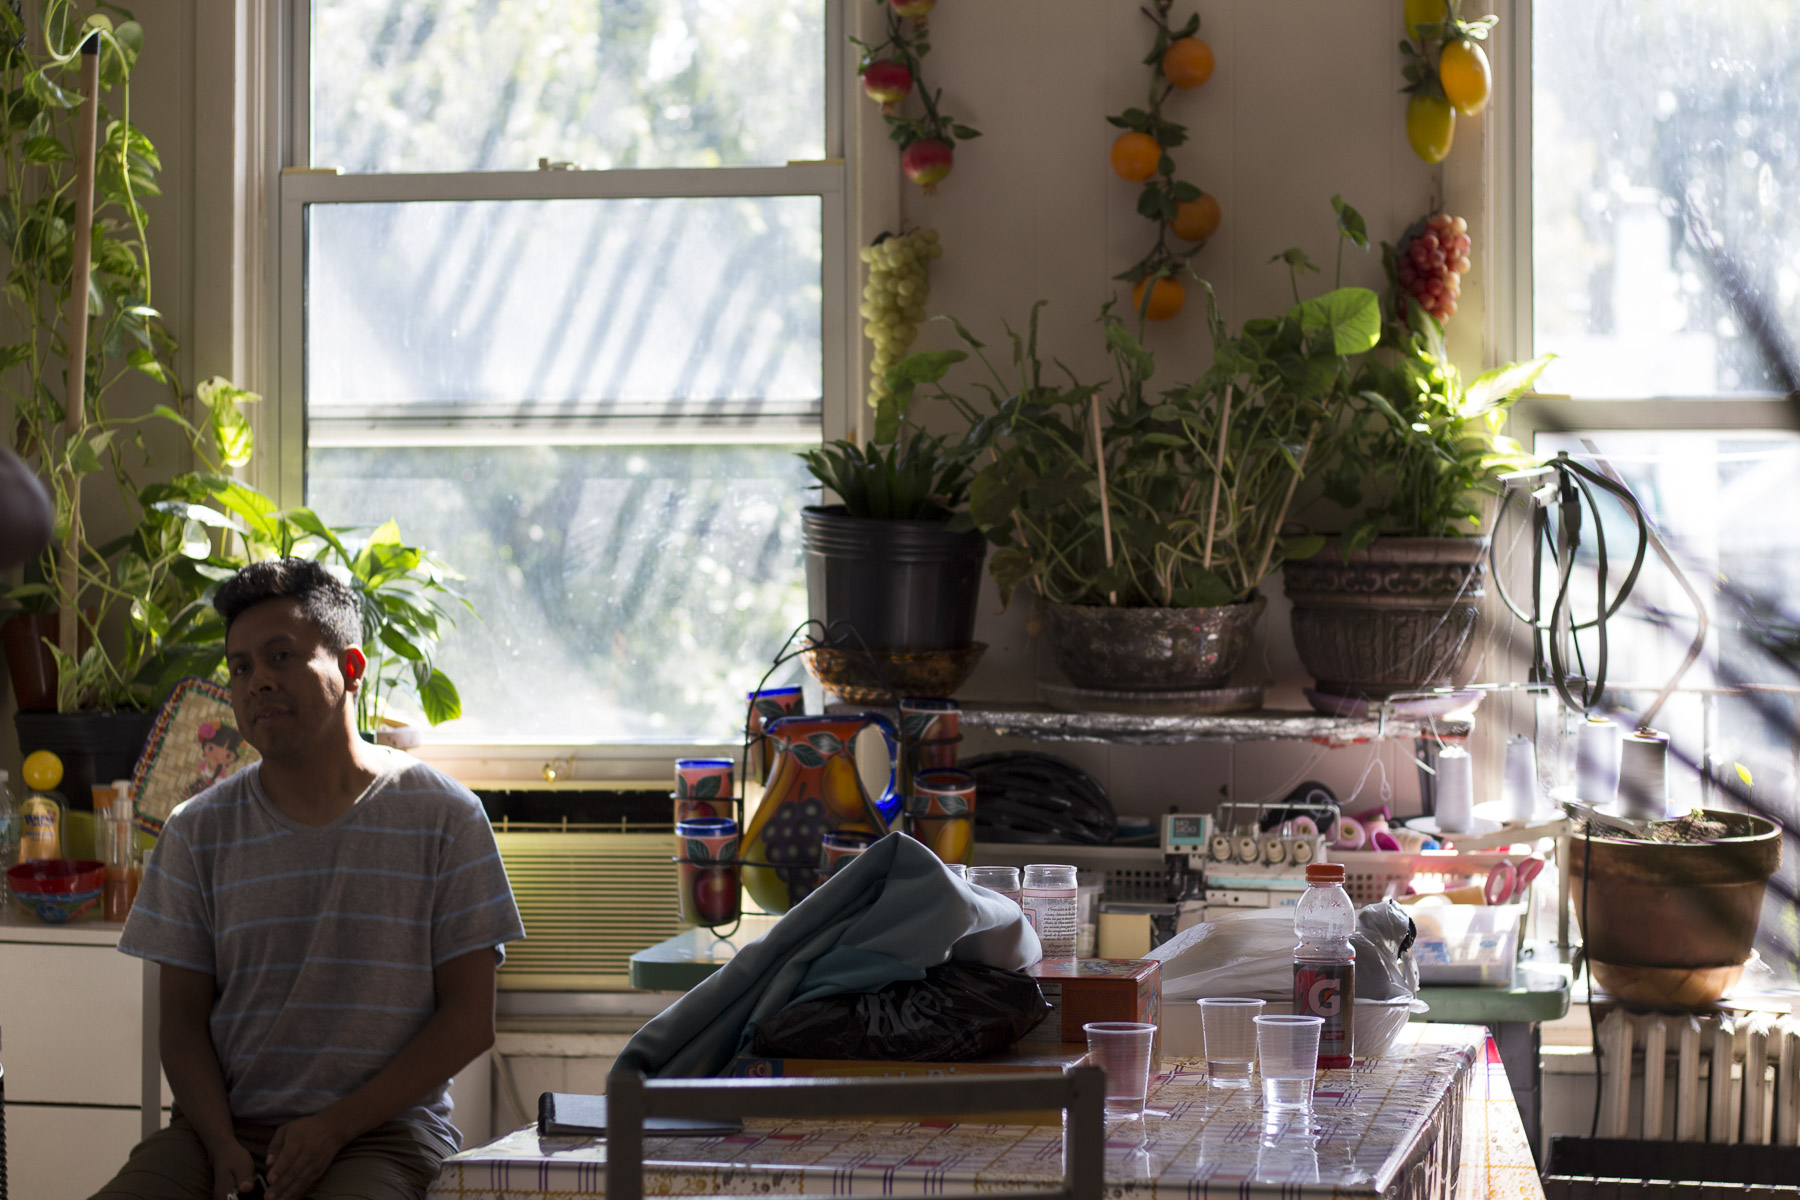 Benito Bravo sits in his kitchen which doubles as his work space for creating costumes. Gabrielle Narcisse and Deleelah Saleh for Picture Justice. August 22, 2017, Sunset Park.